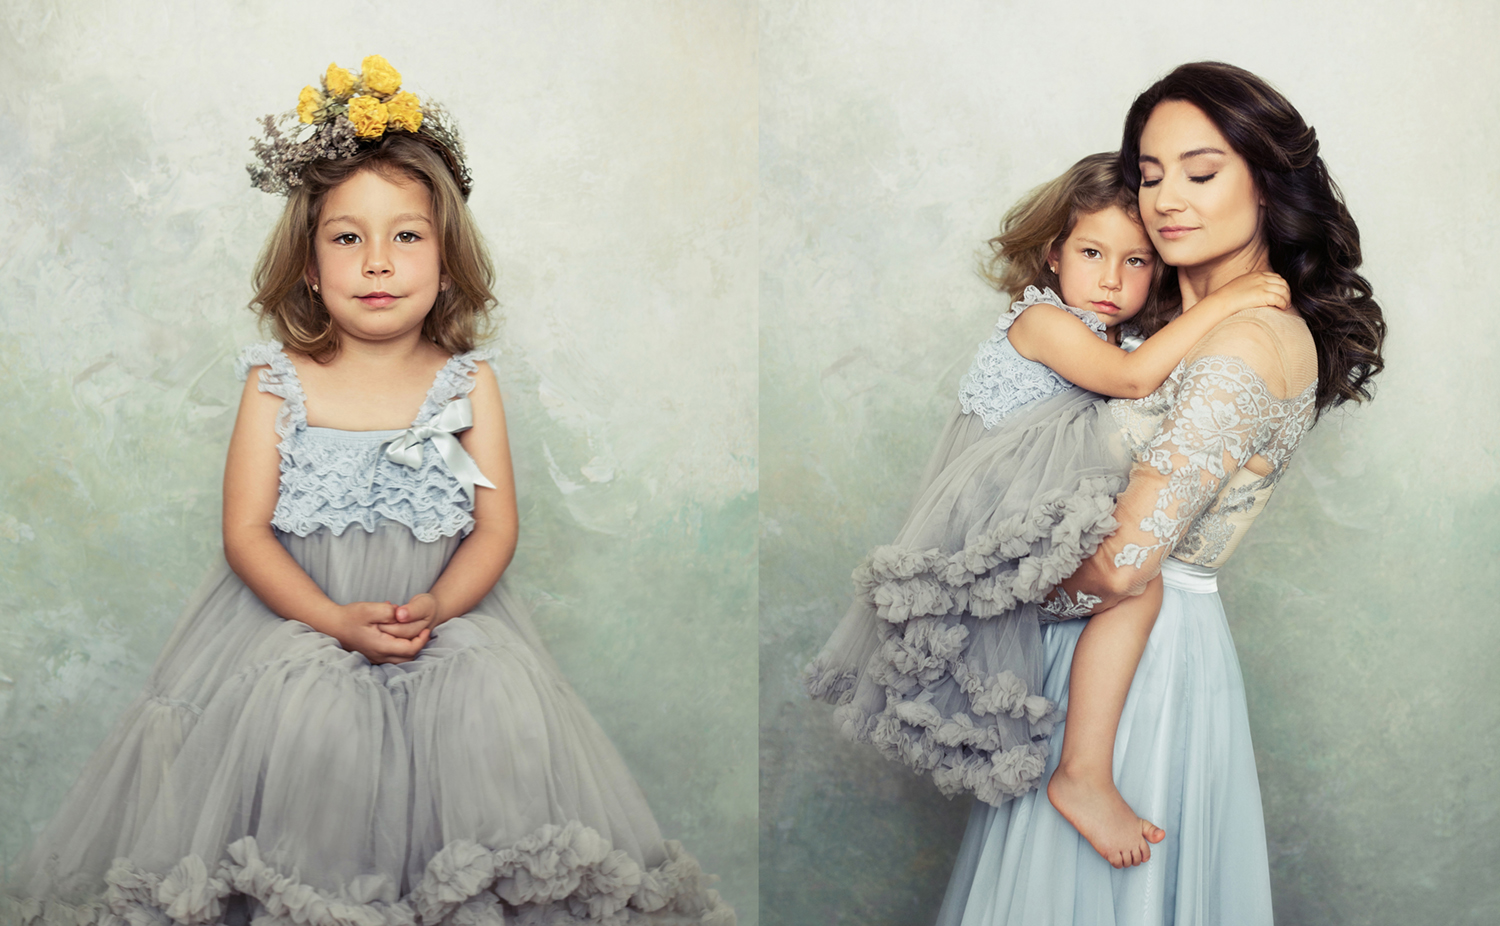 Stunning portrait of mother and daughter by Sacramento Photographer Mayumi Acosta.jpg